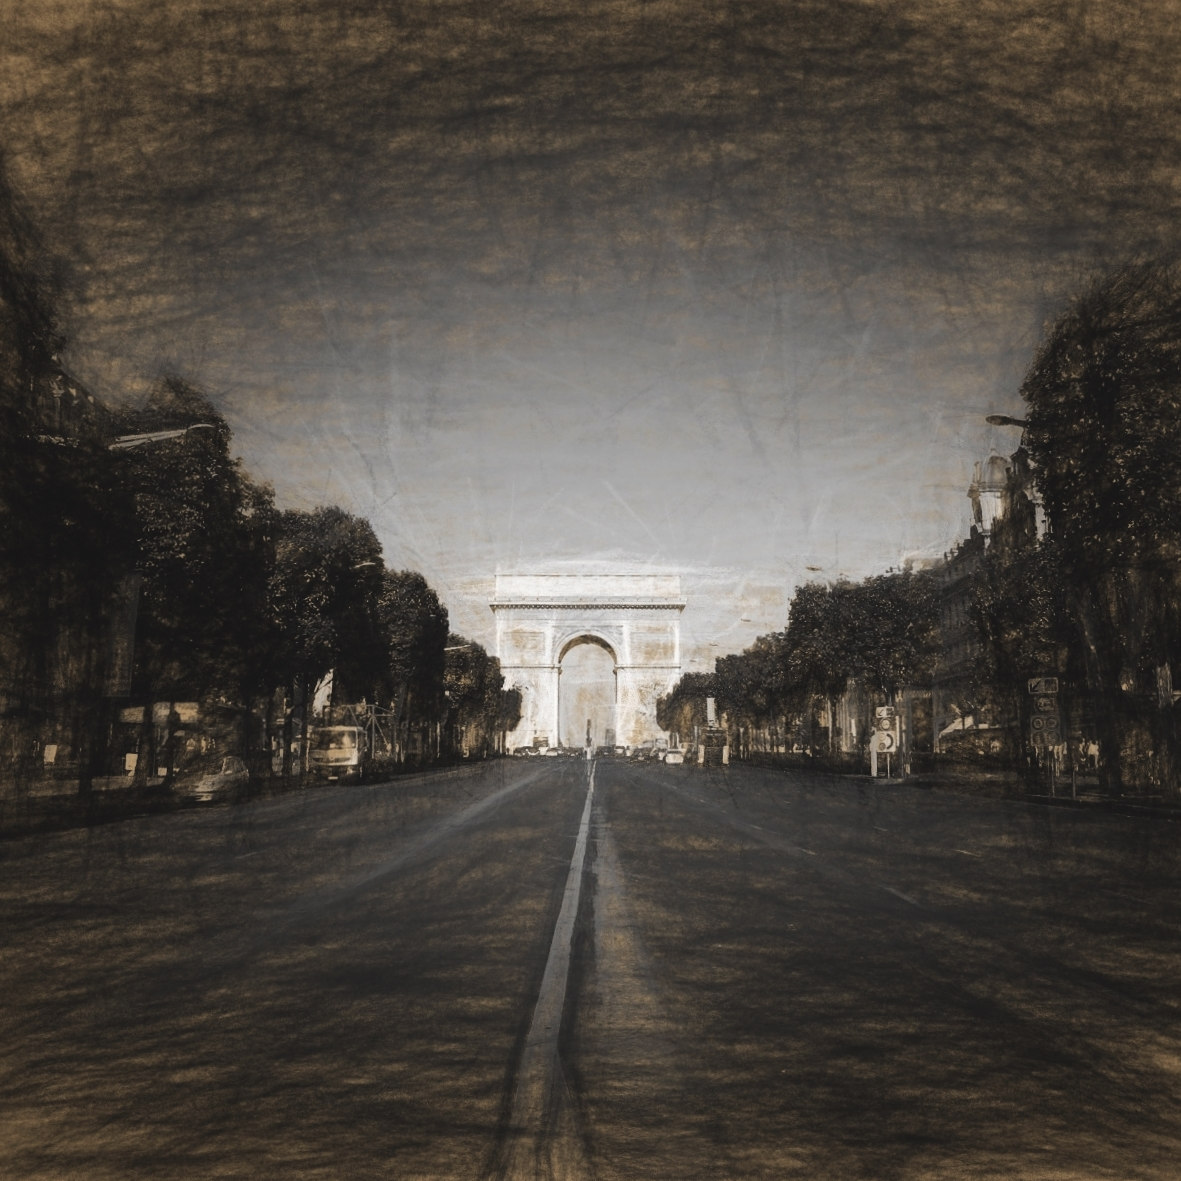 13-Paris-Neda-Vent-Fischer-Architectural-Photography-with-a-bit-of-a-Difference-www-designstack-co